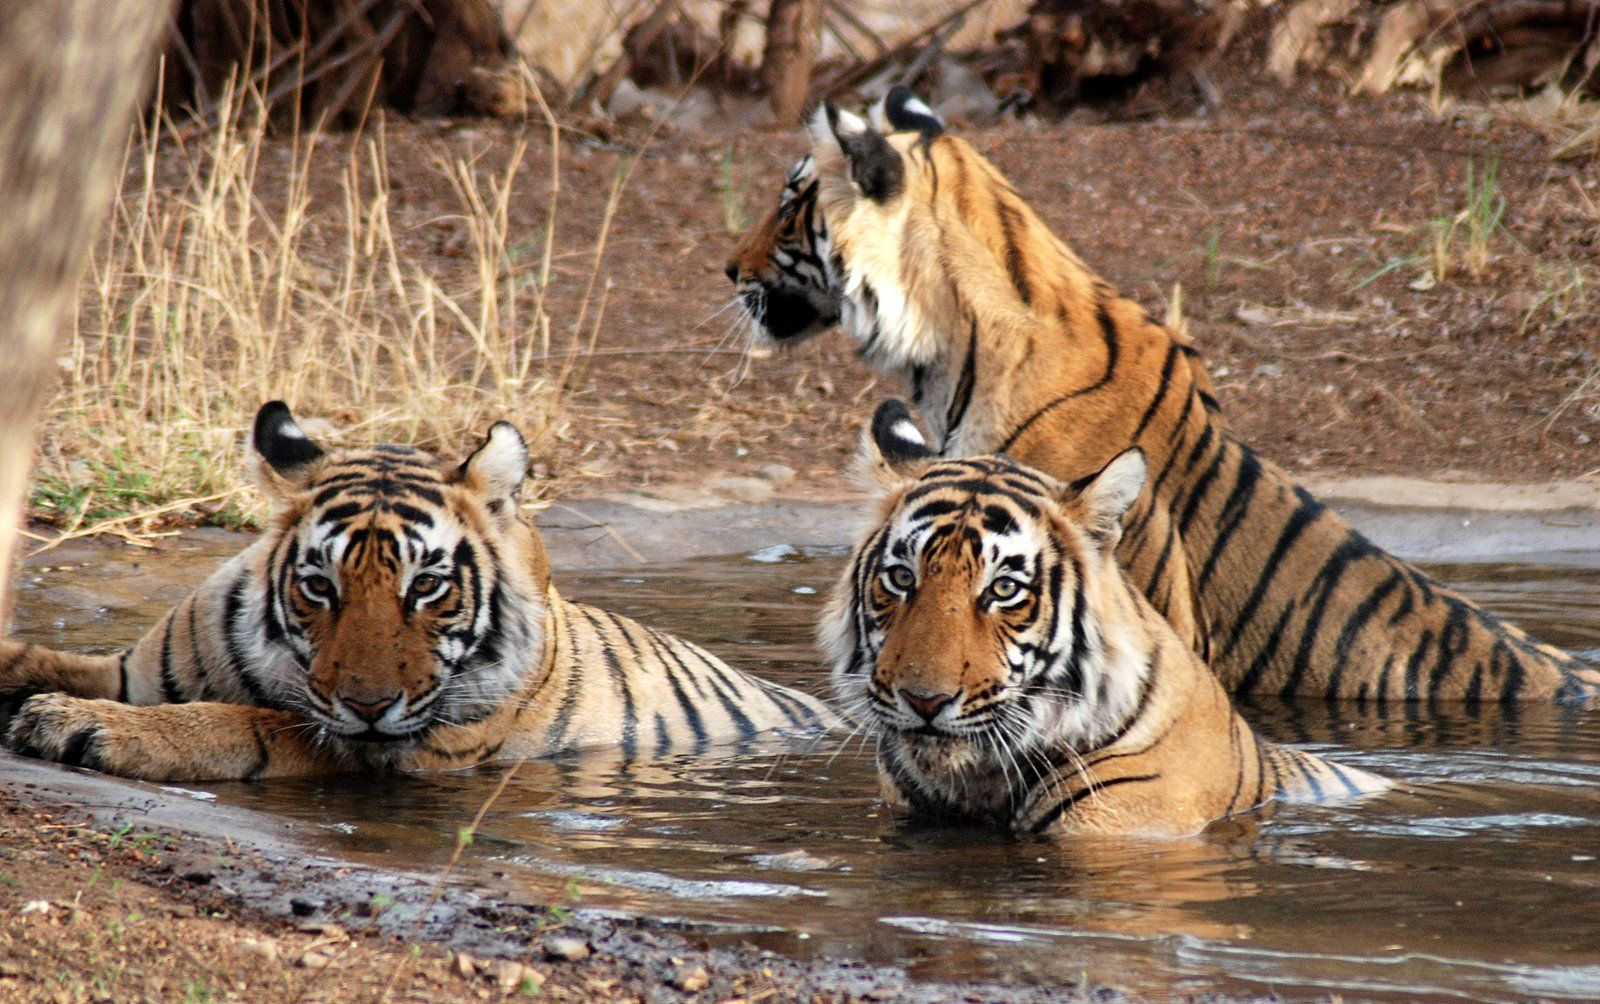 Frolicking tigers in the Jim Corbett National Park